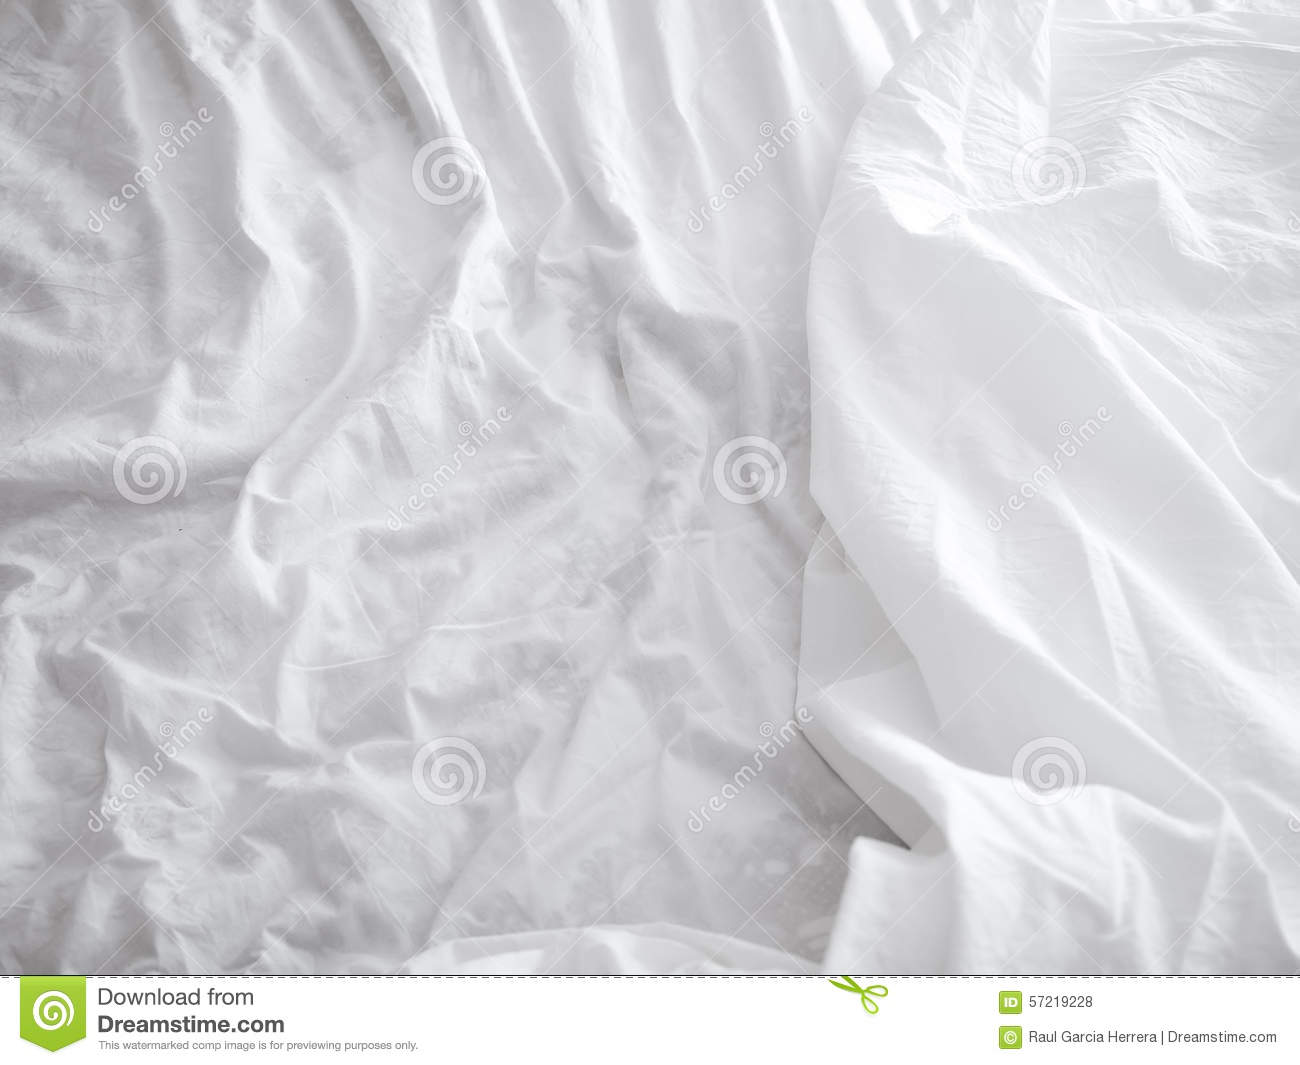 Bed sheet texture - White Bed Sheets Background And Texture